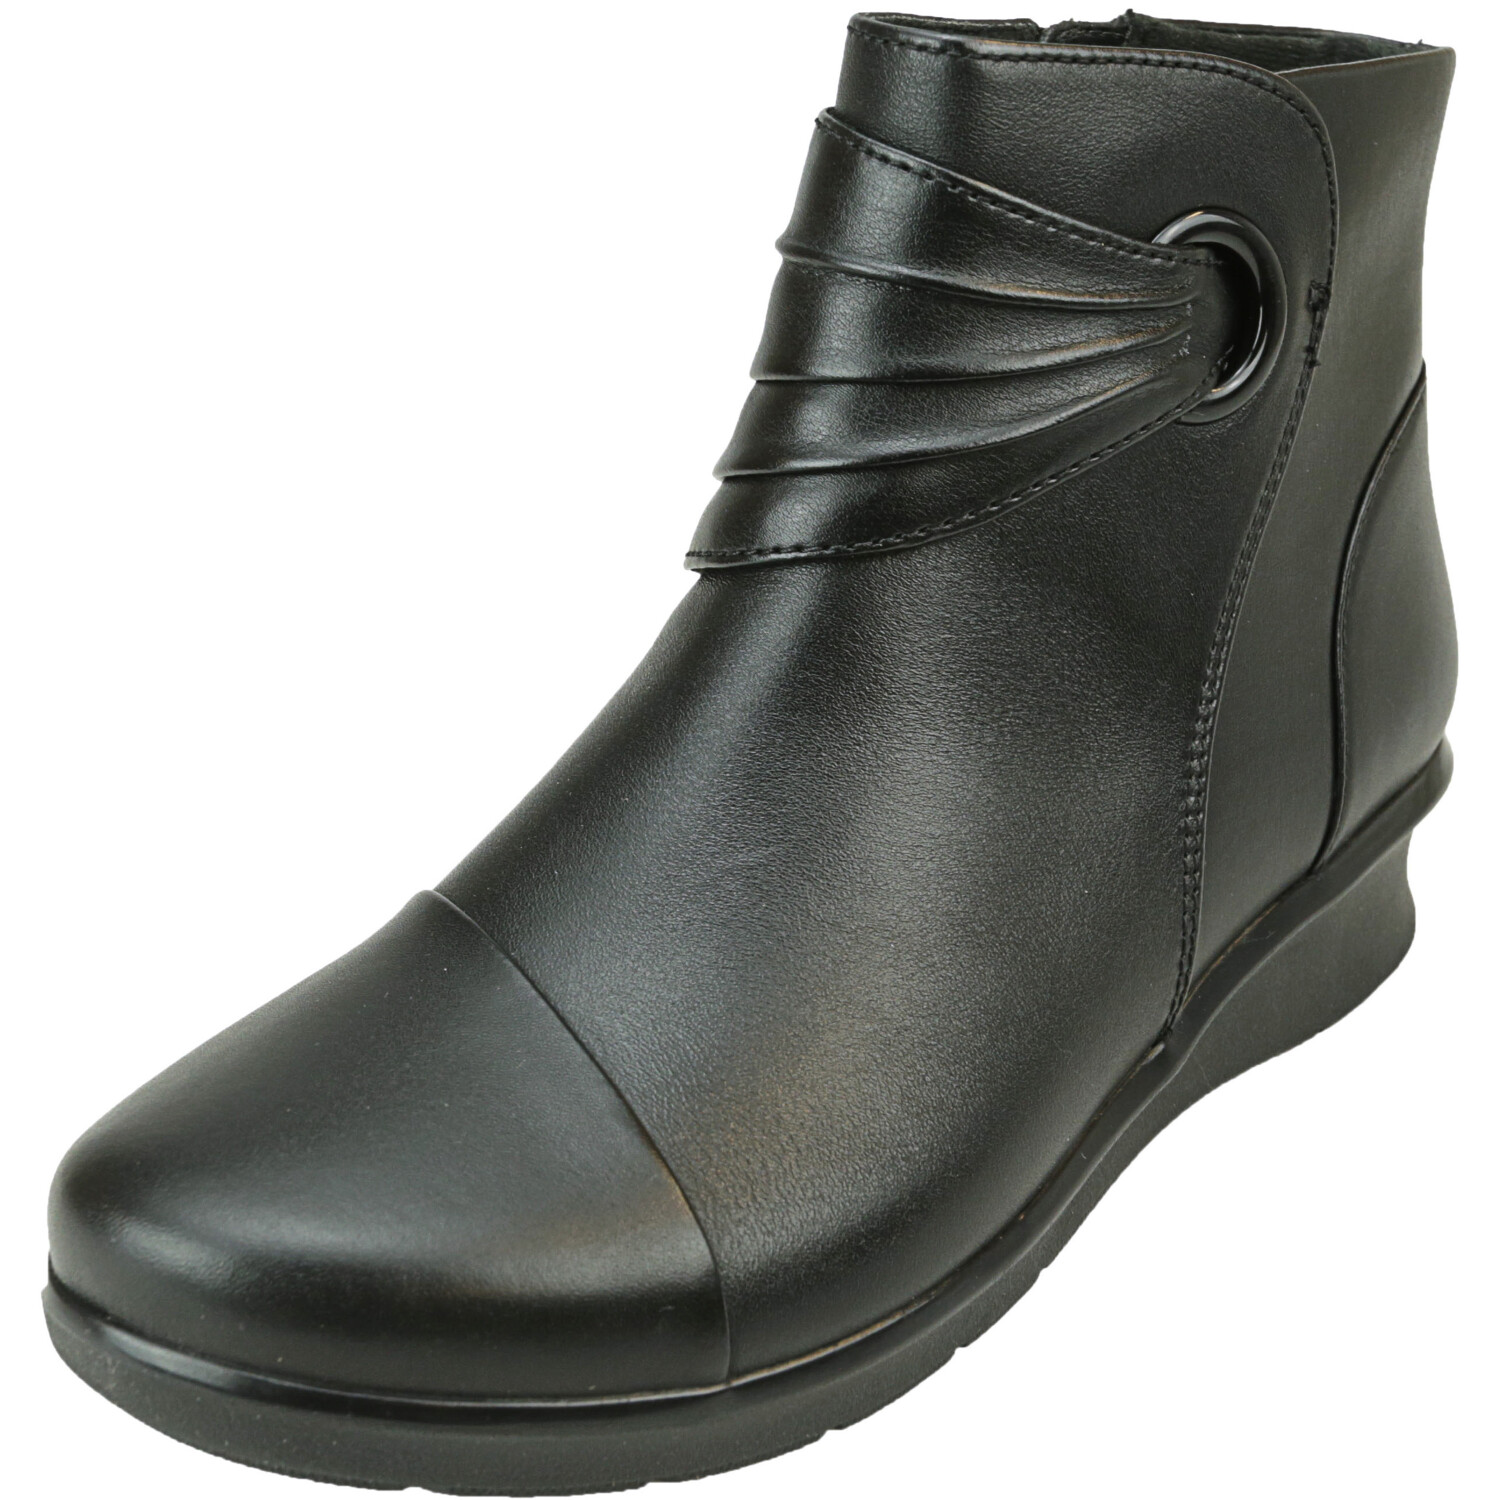 Clarks Women's Hope Twirl Leather Black Ankle-High Boot - 5M